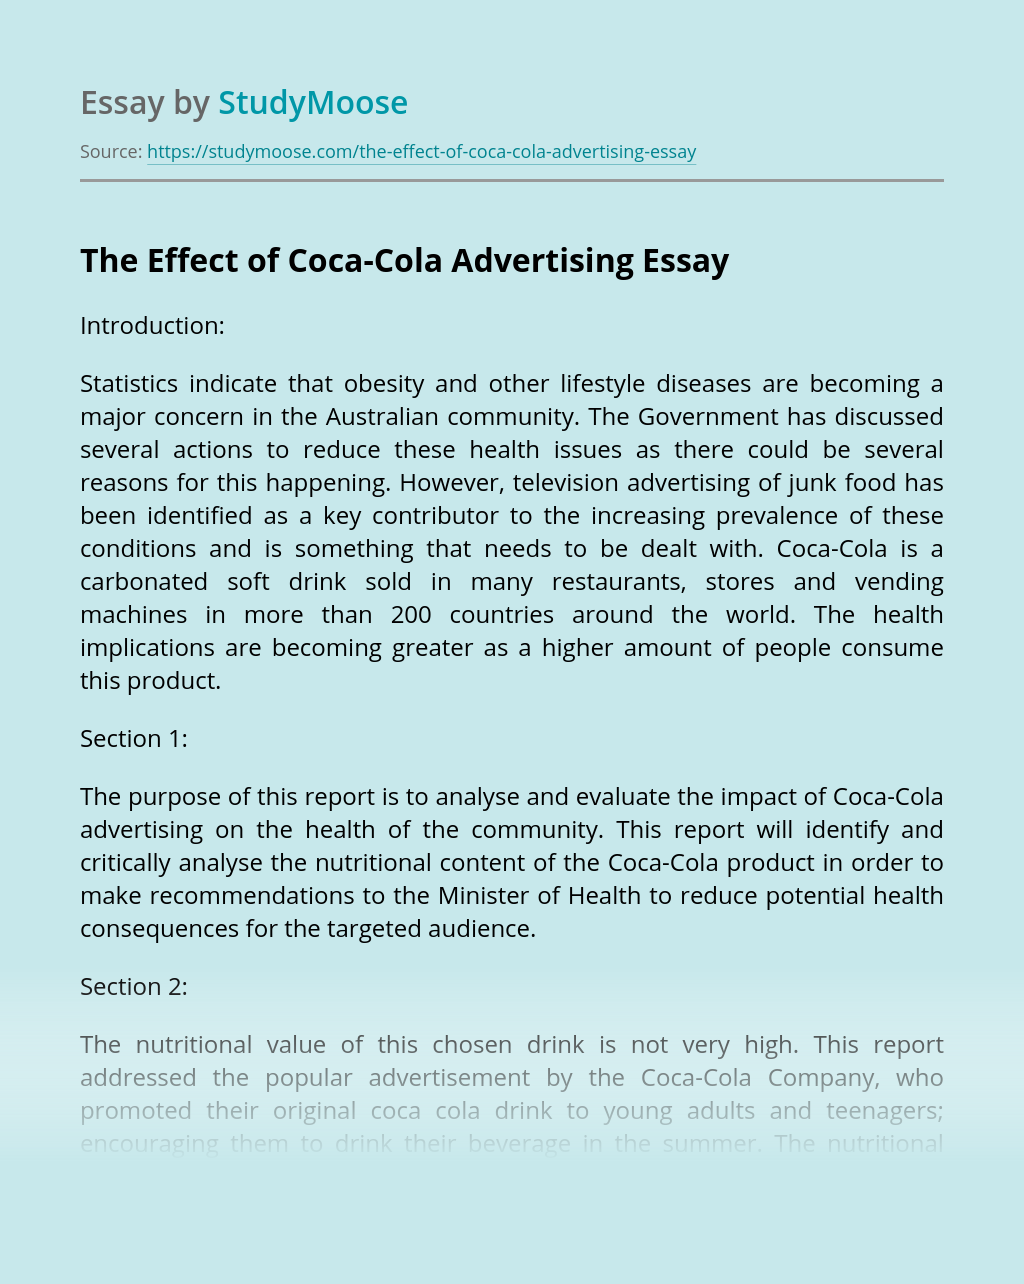 The Effect of Coca-Cola Advertising